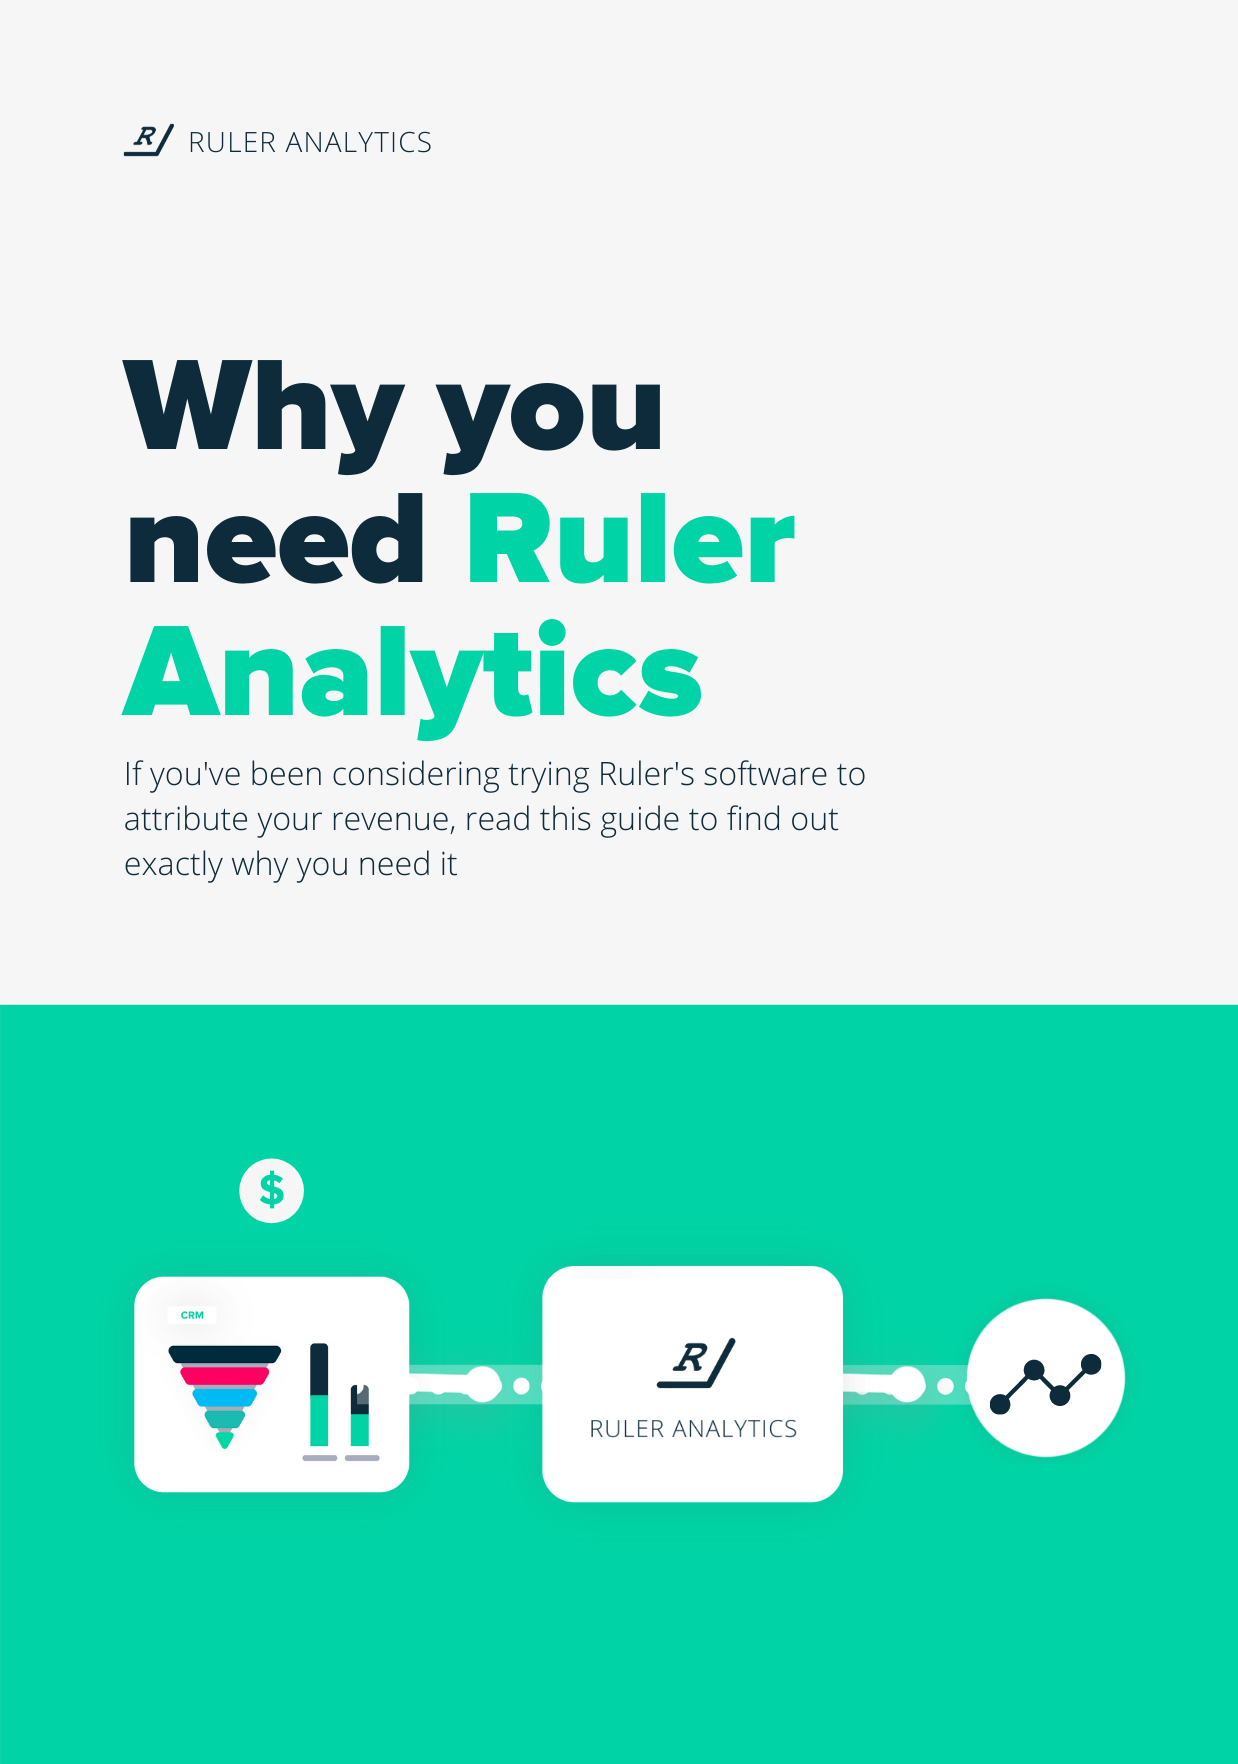 Why you need Ruler Analytics